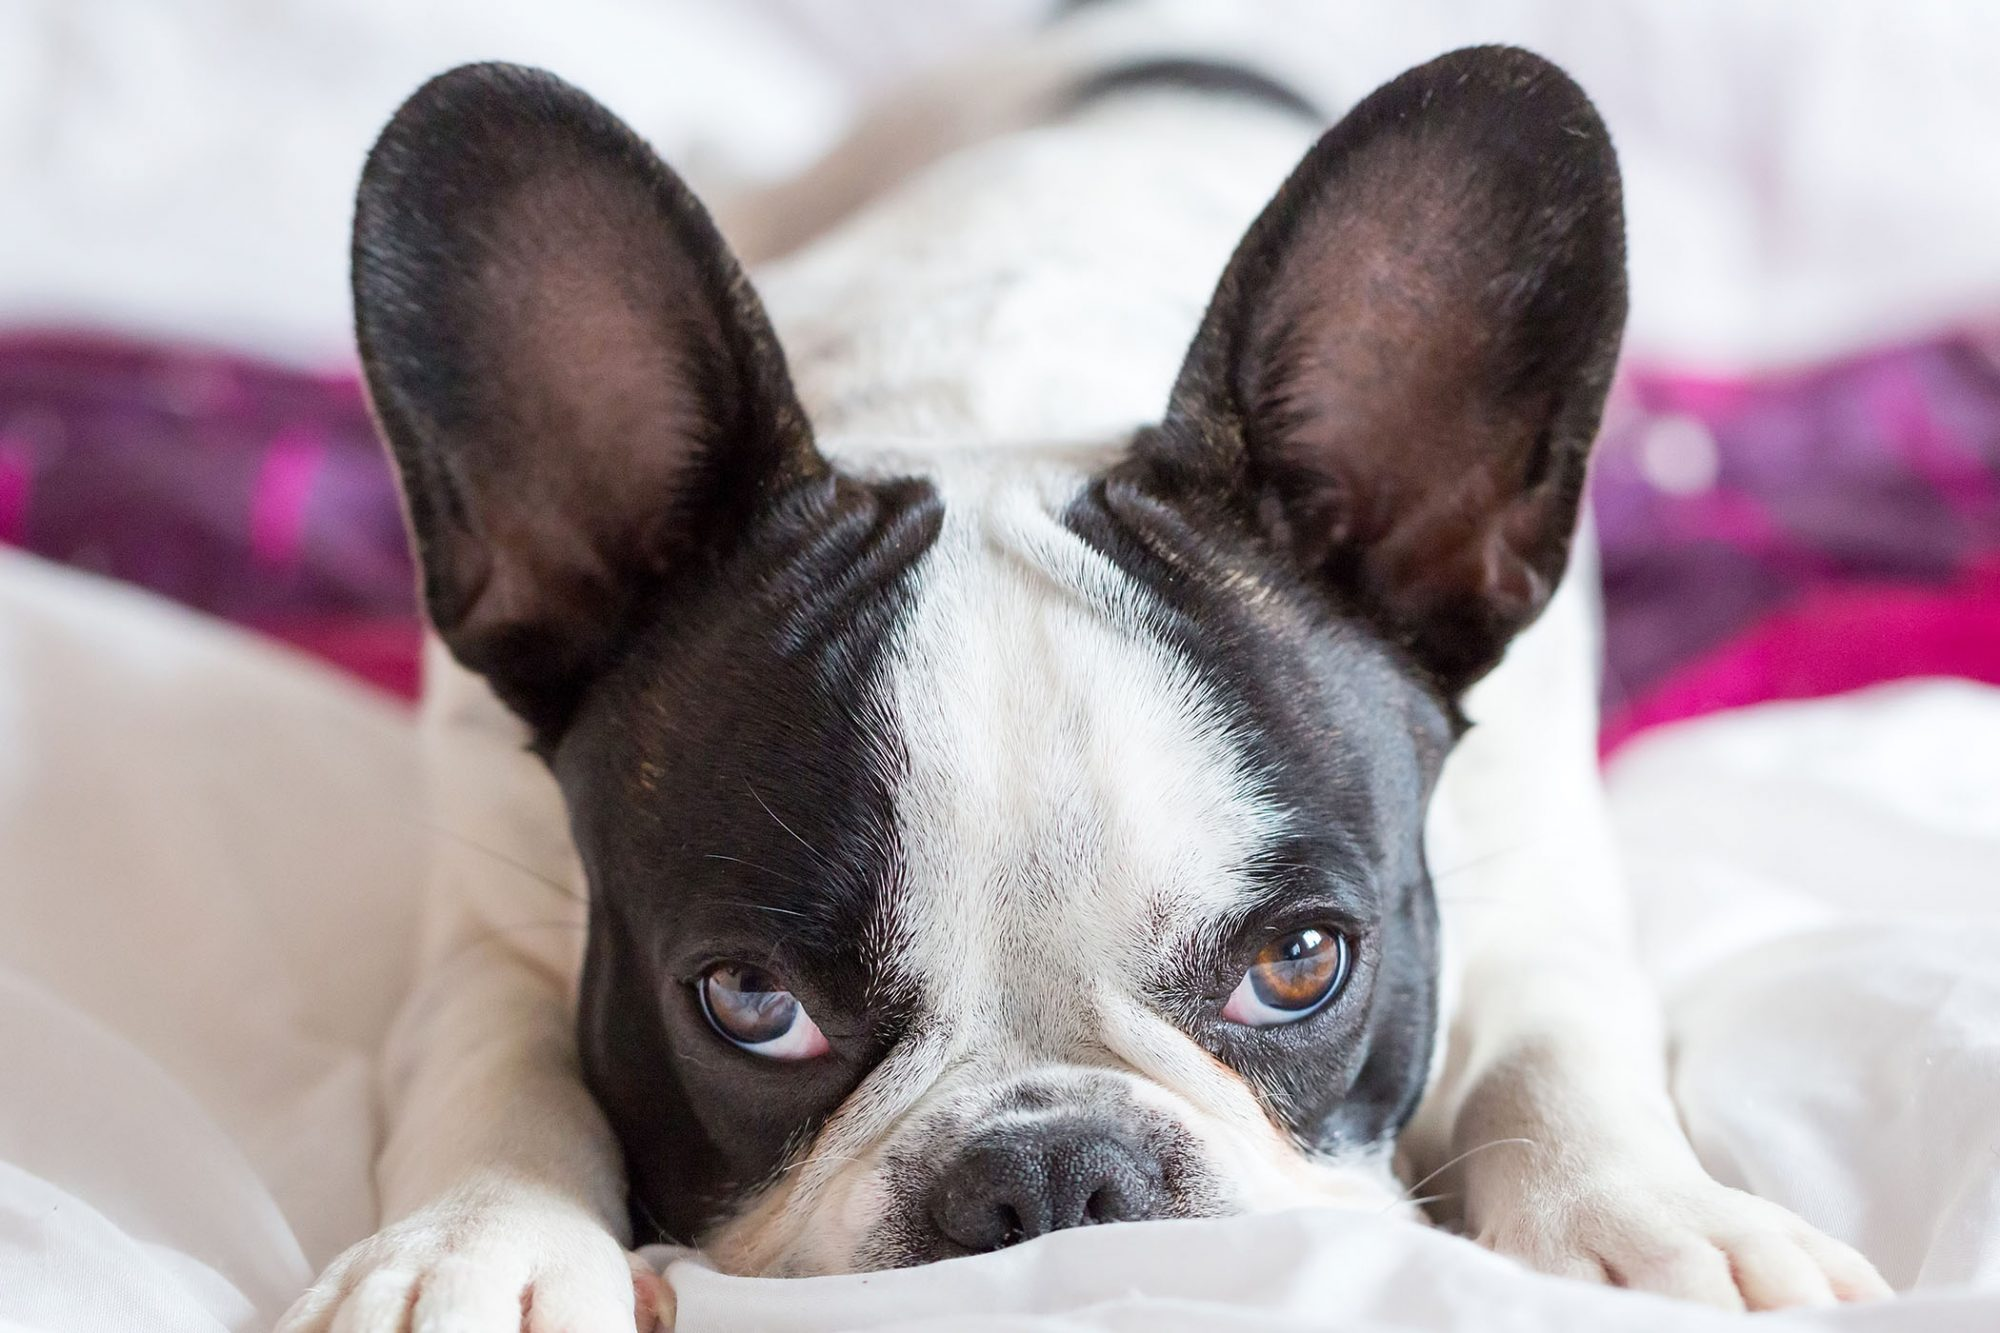 big ears of a french bulldog